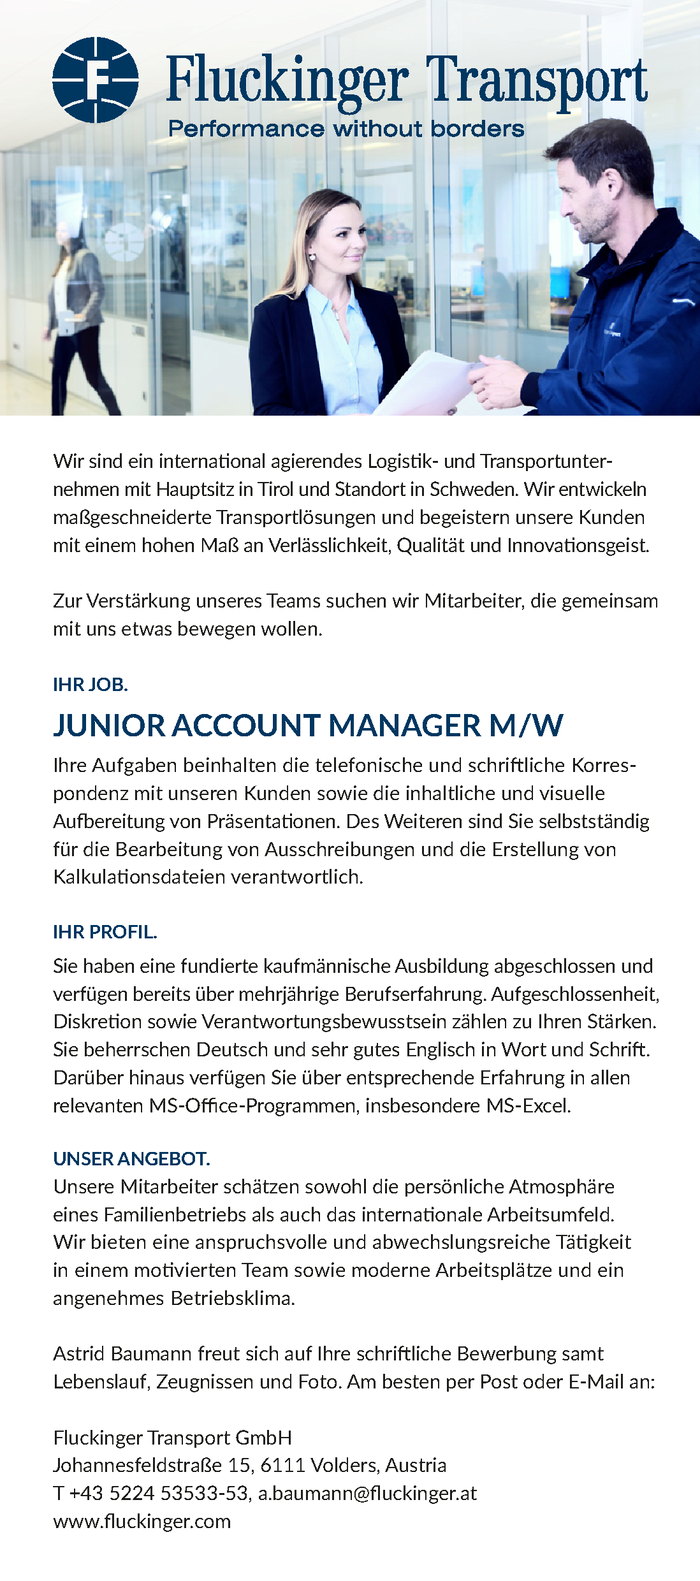 JUNIOR ACCOUNT MANAGER M/W